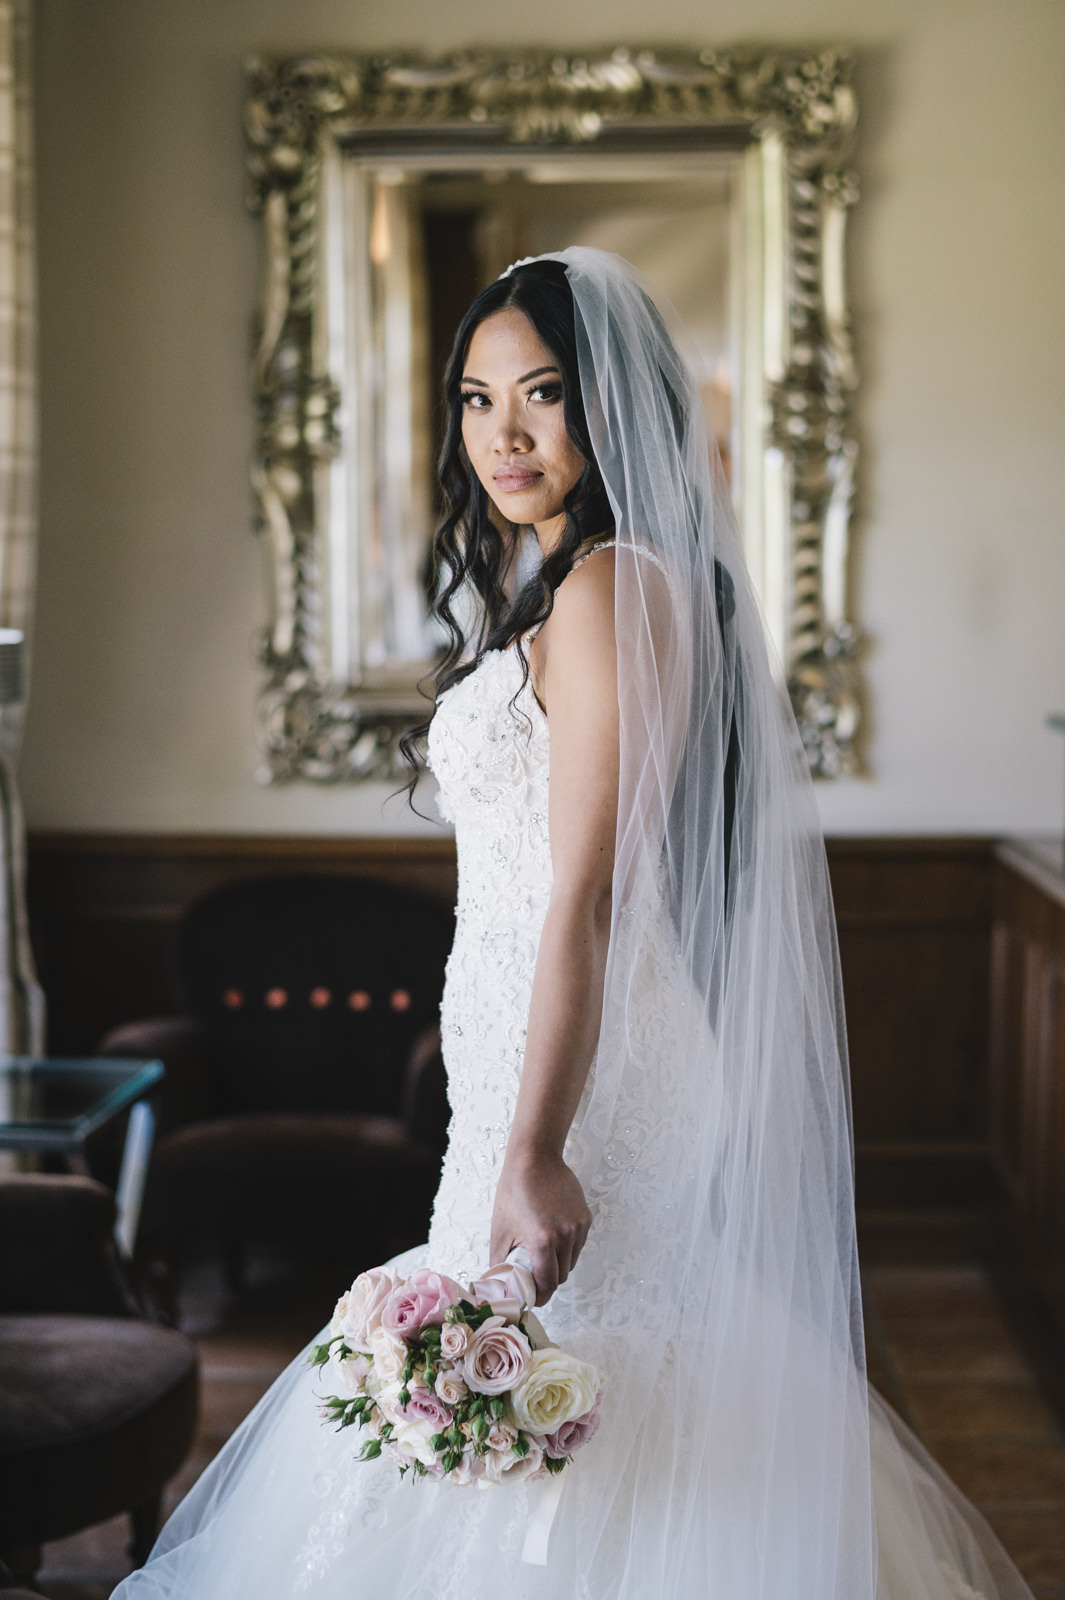 bride's portrait with her bouquet